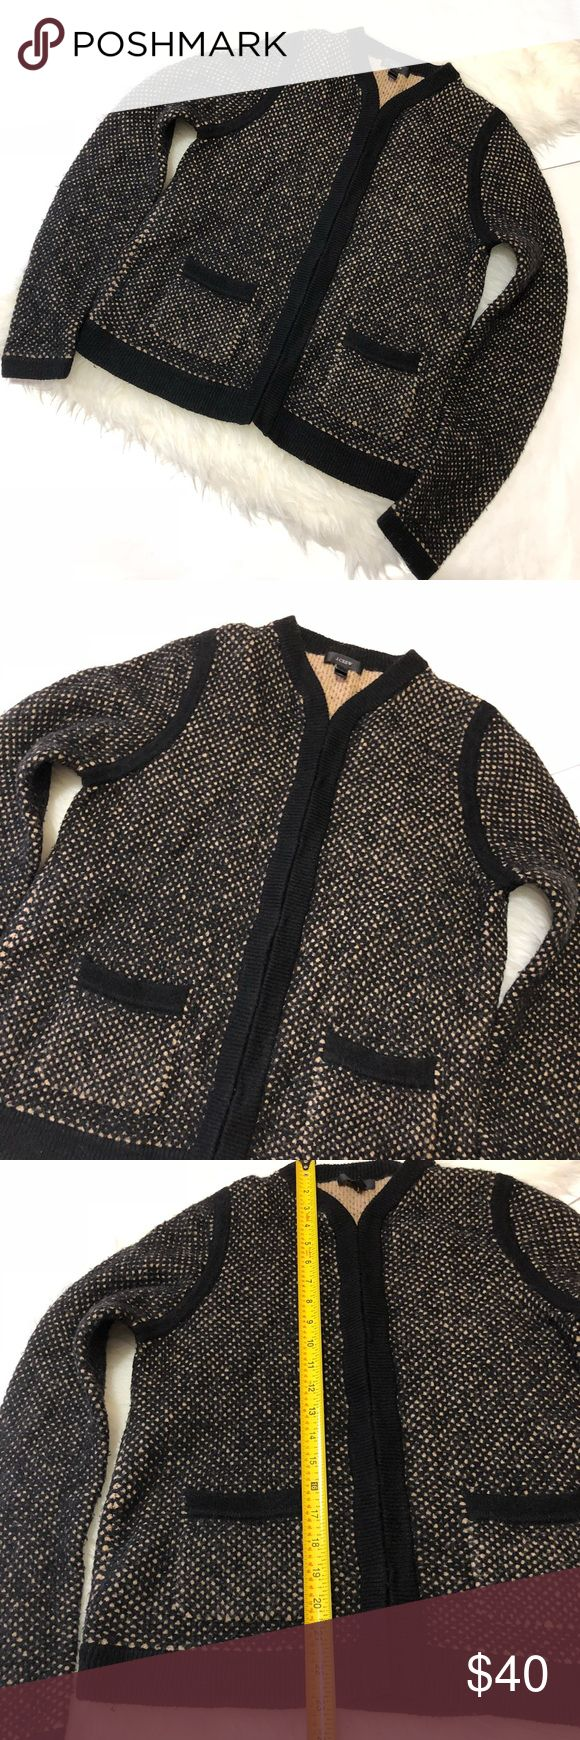 "J. Crew• Honey comb wool knit sweater Size M. J.Crew Women's Honeycomb Wool Sweater Jacket. Size M. Black/Camel Honeycomb Latrice Pattern. • Self: 33% Polyamide, 25% Acrylic, 25% Wool, 16% Viscose, 1% Spandex. • Long sleeve with hook and eye front closures. • On-seam patch pocket. • Style #13757. Sweater has a ""fuzzy"" look, not a defect. Overall, in great pre-owned condition with minimal wear and tear. J. Crew Sweaters"